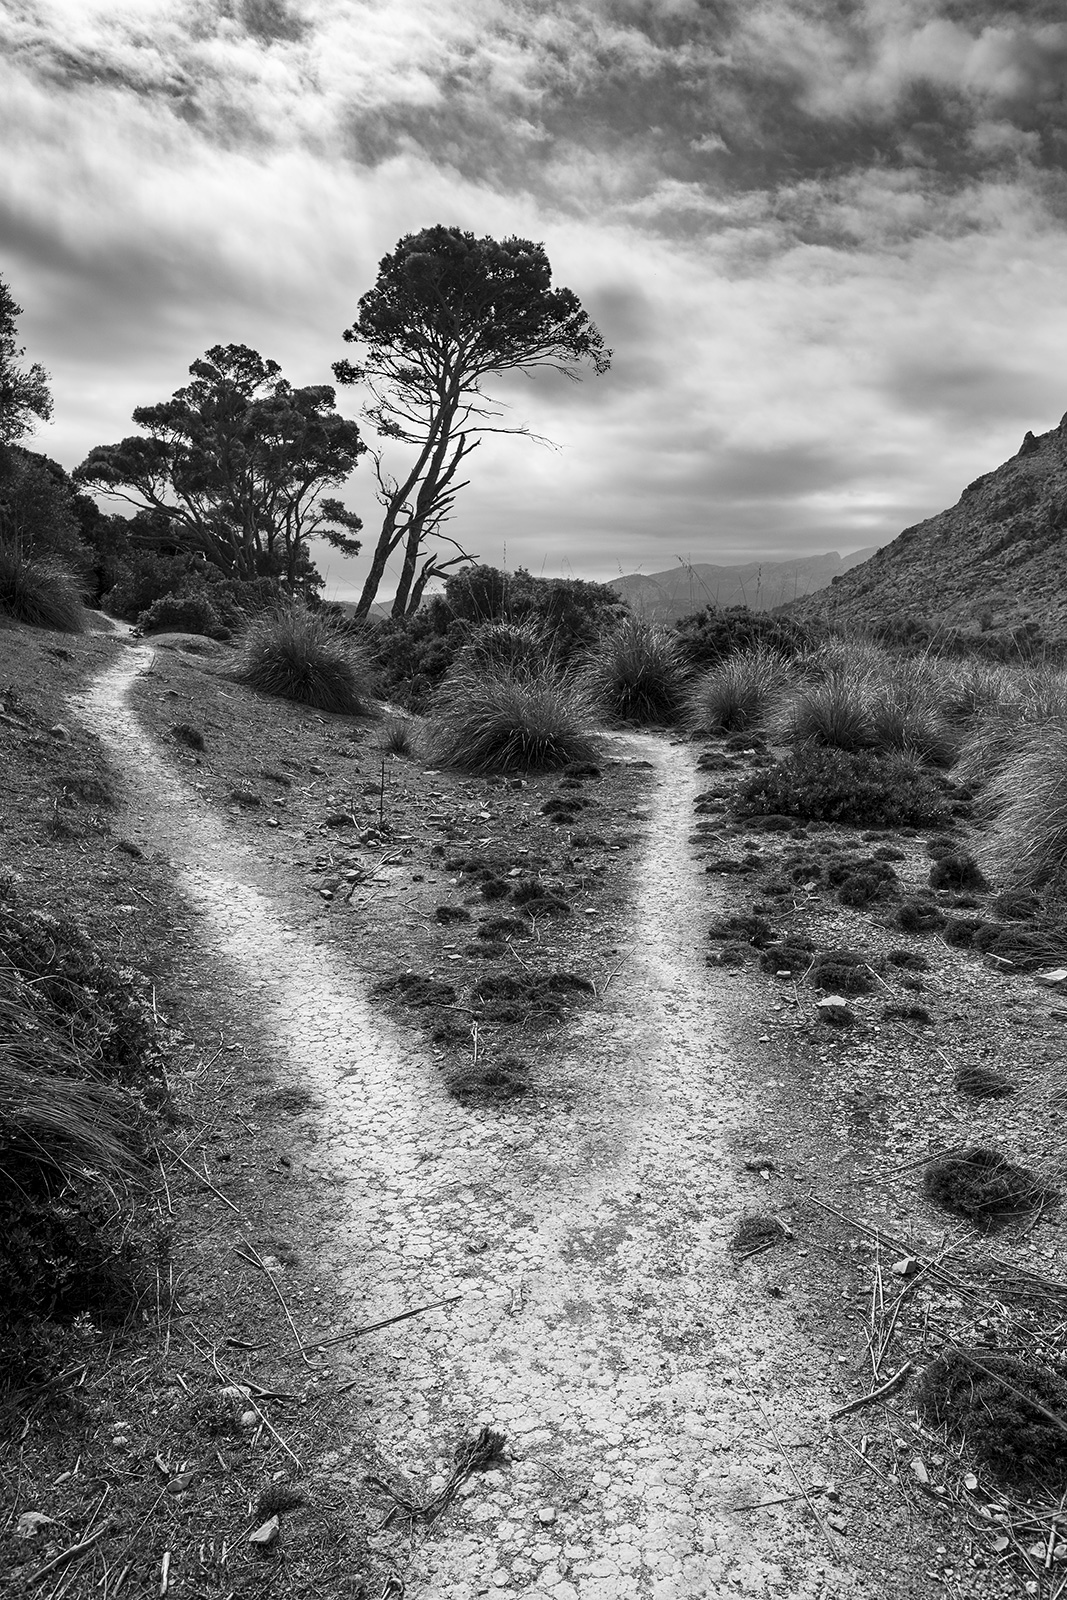 Forked foot path leading between clumps of grasses towards tall pine trees with Boquer valley and Mediterranean mountains in distance, documentary black and white landscape portrait Mallorca Spain ©P. Maton 2019 eyeteeth.net